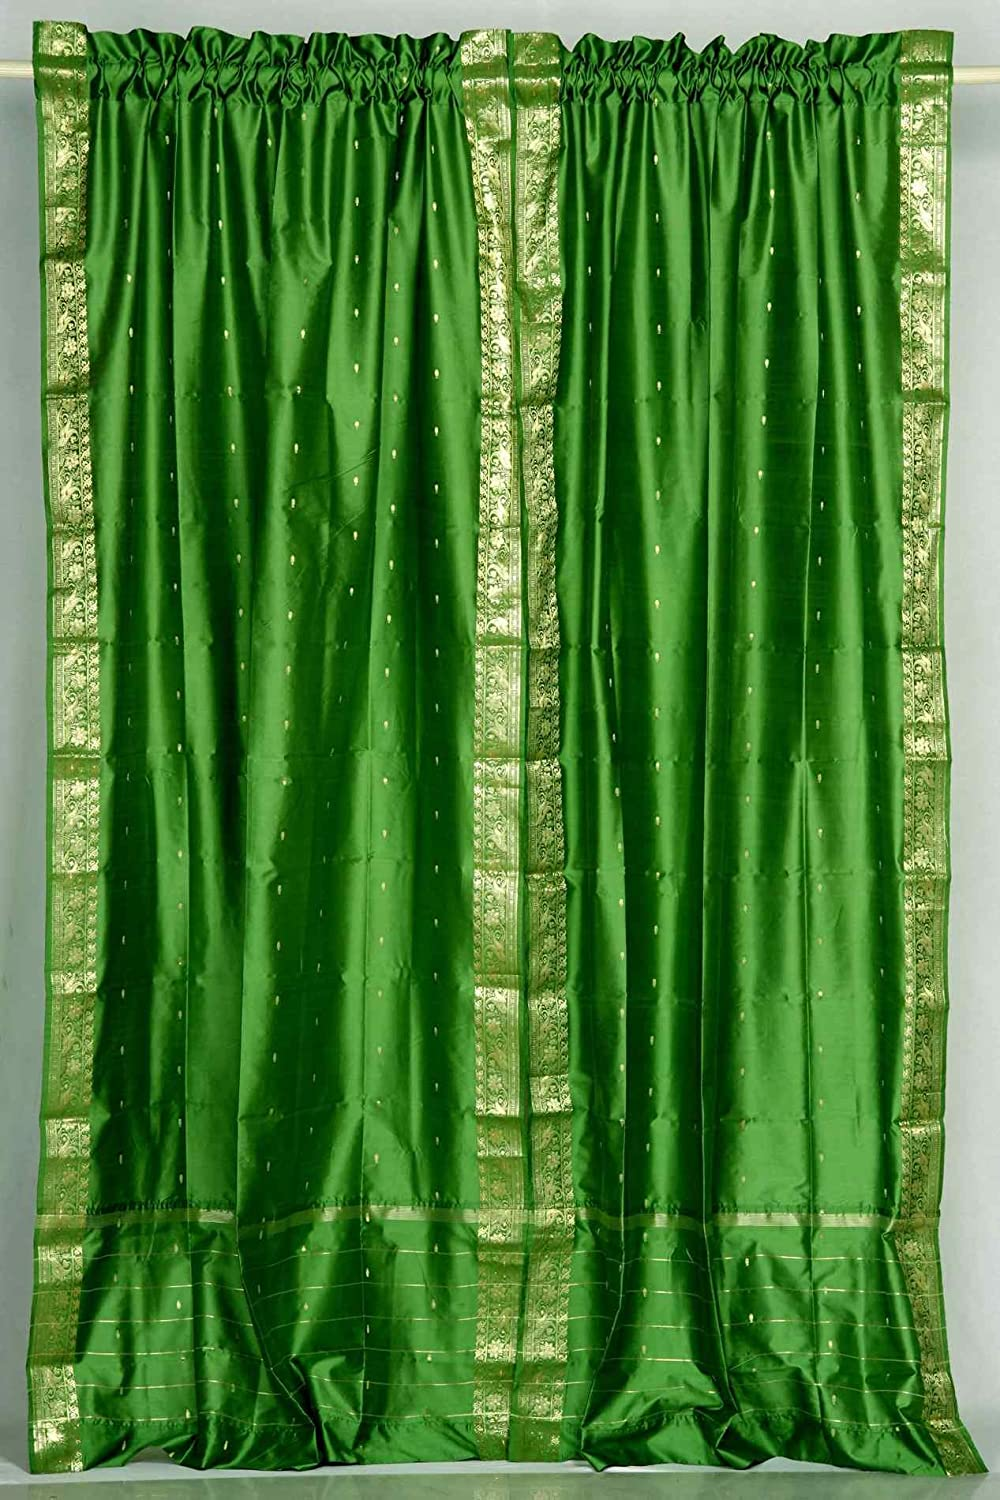 Indian Selections Lined-Forest Green discount Rod Mail order Curta Sheer Pocket Sari